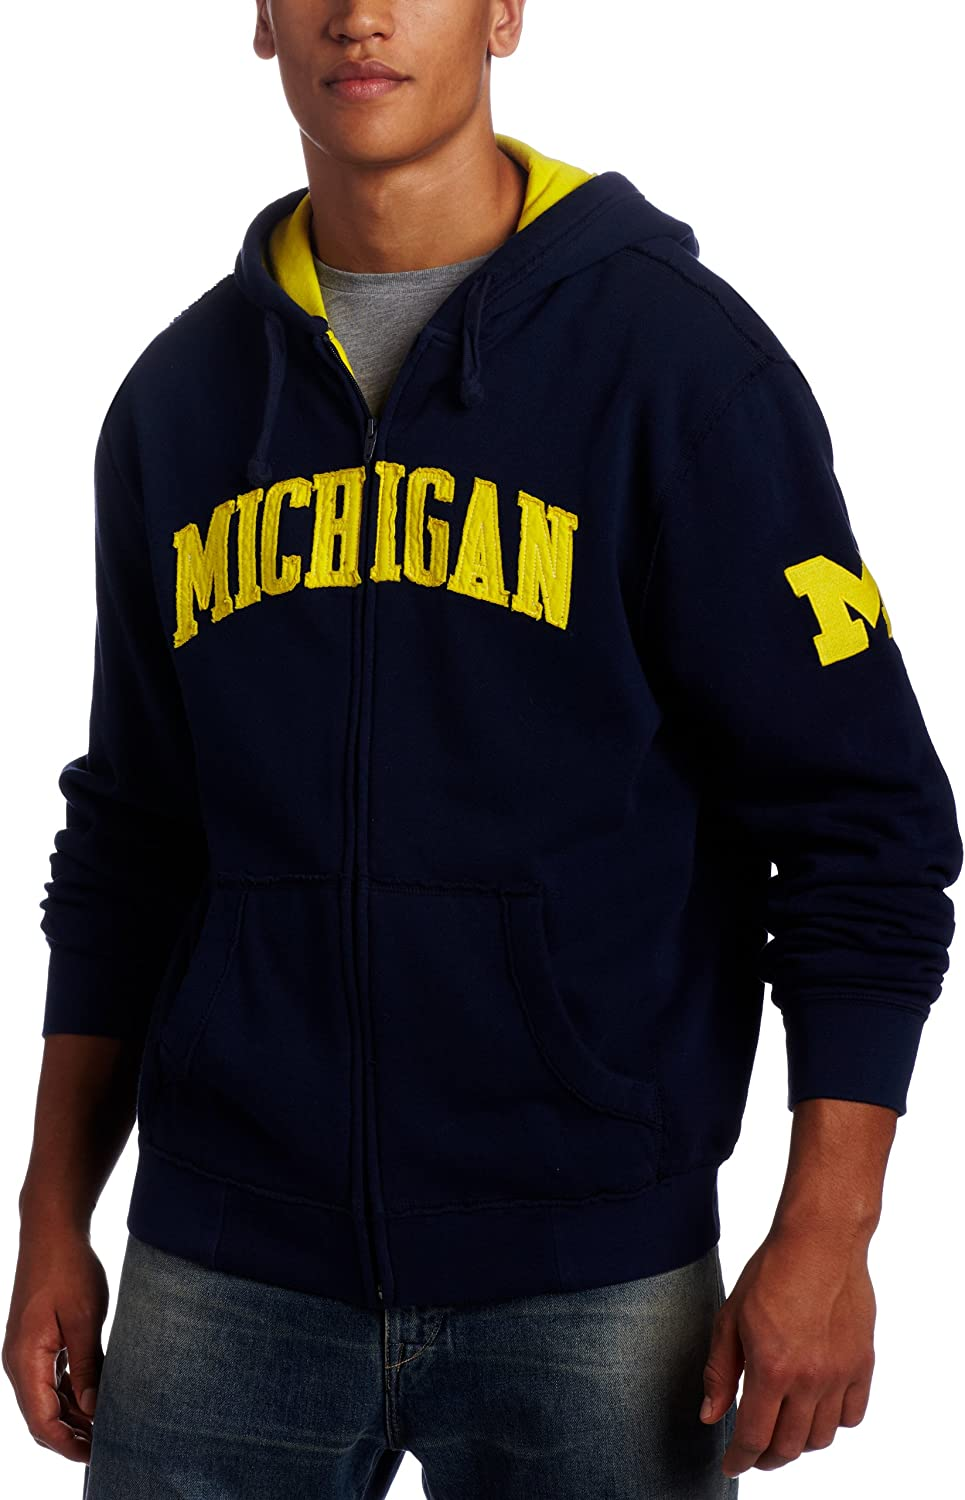 NCAA Michigan Wolverines Gametime Clearance SALE! Limited time! Zip Men's Safety and trust Full Hoodie